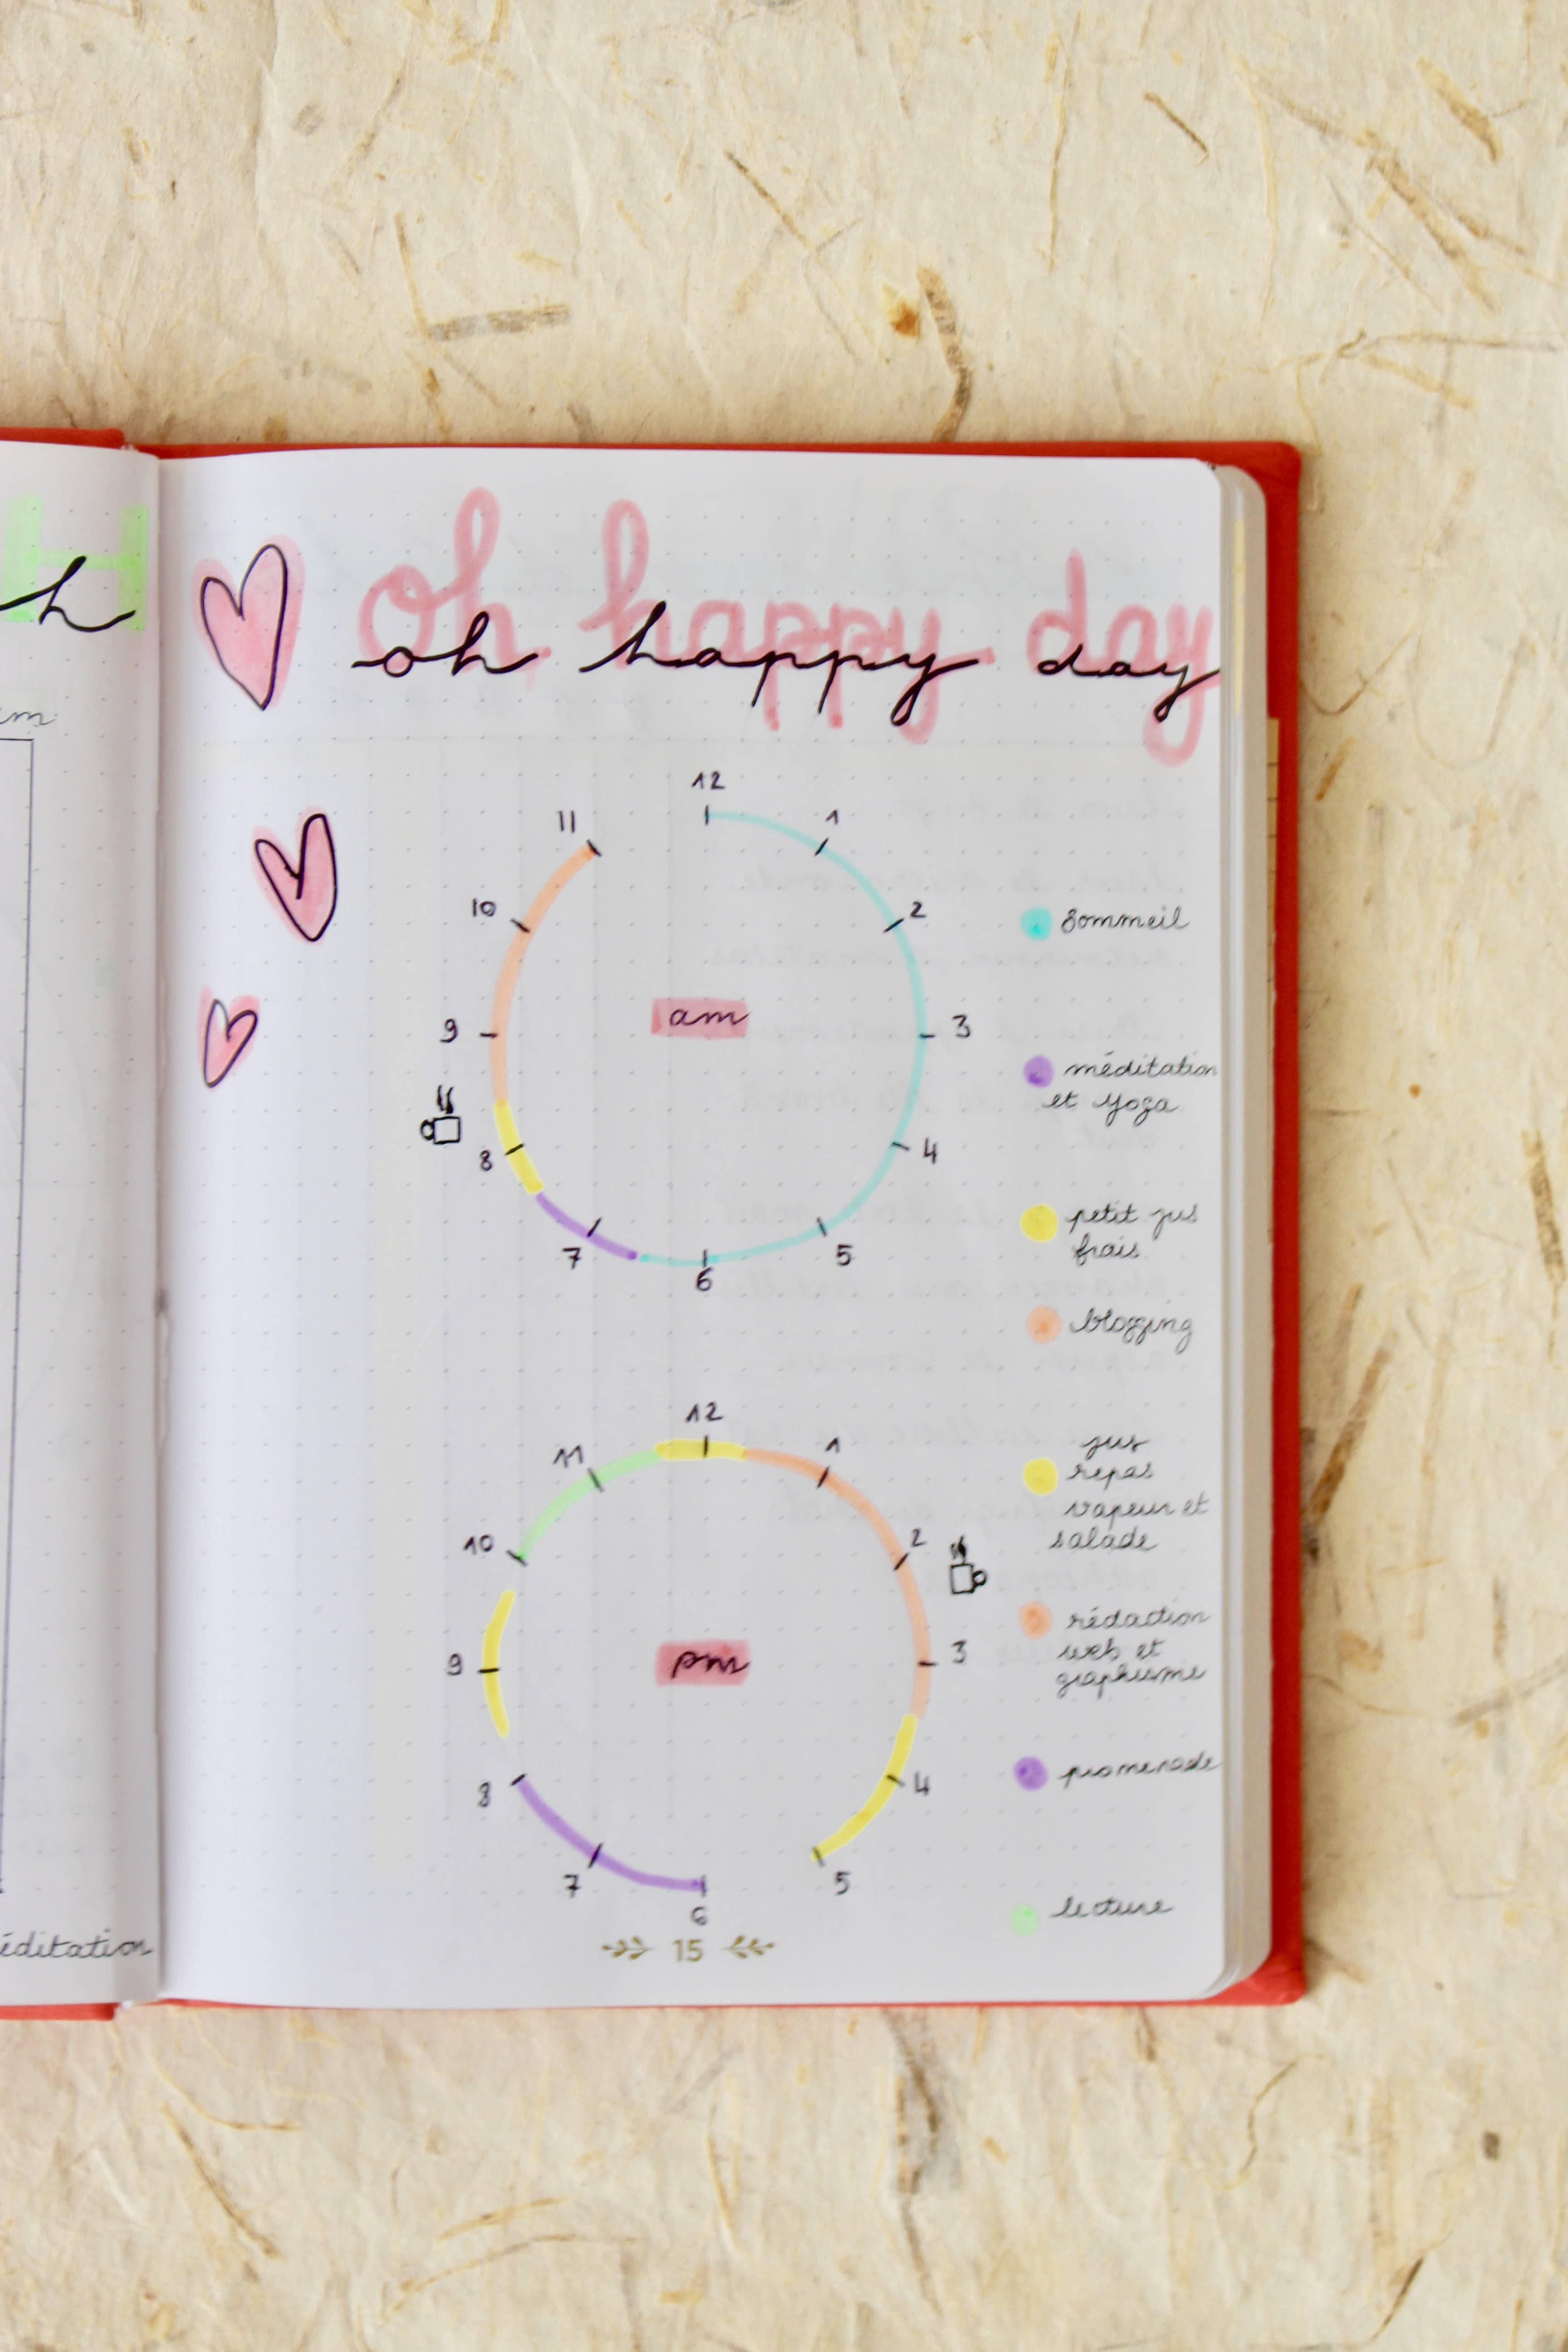 bullet-journal-exemple-journee-ideale-happy-day